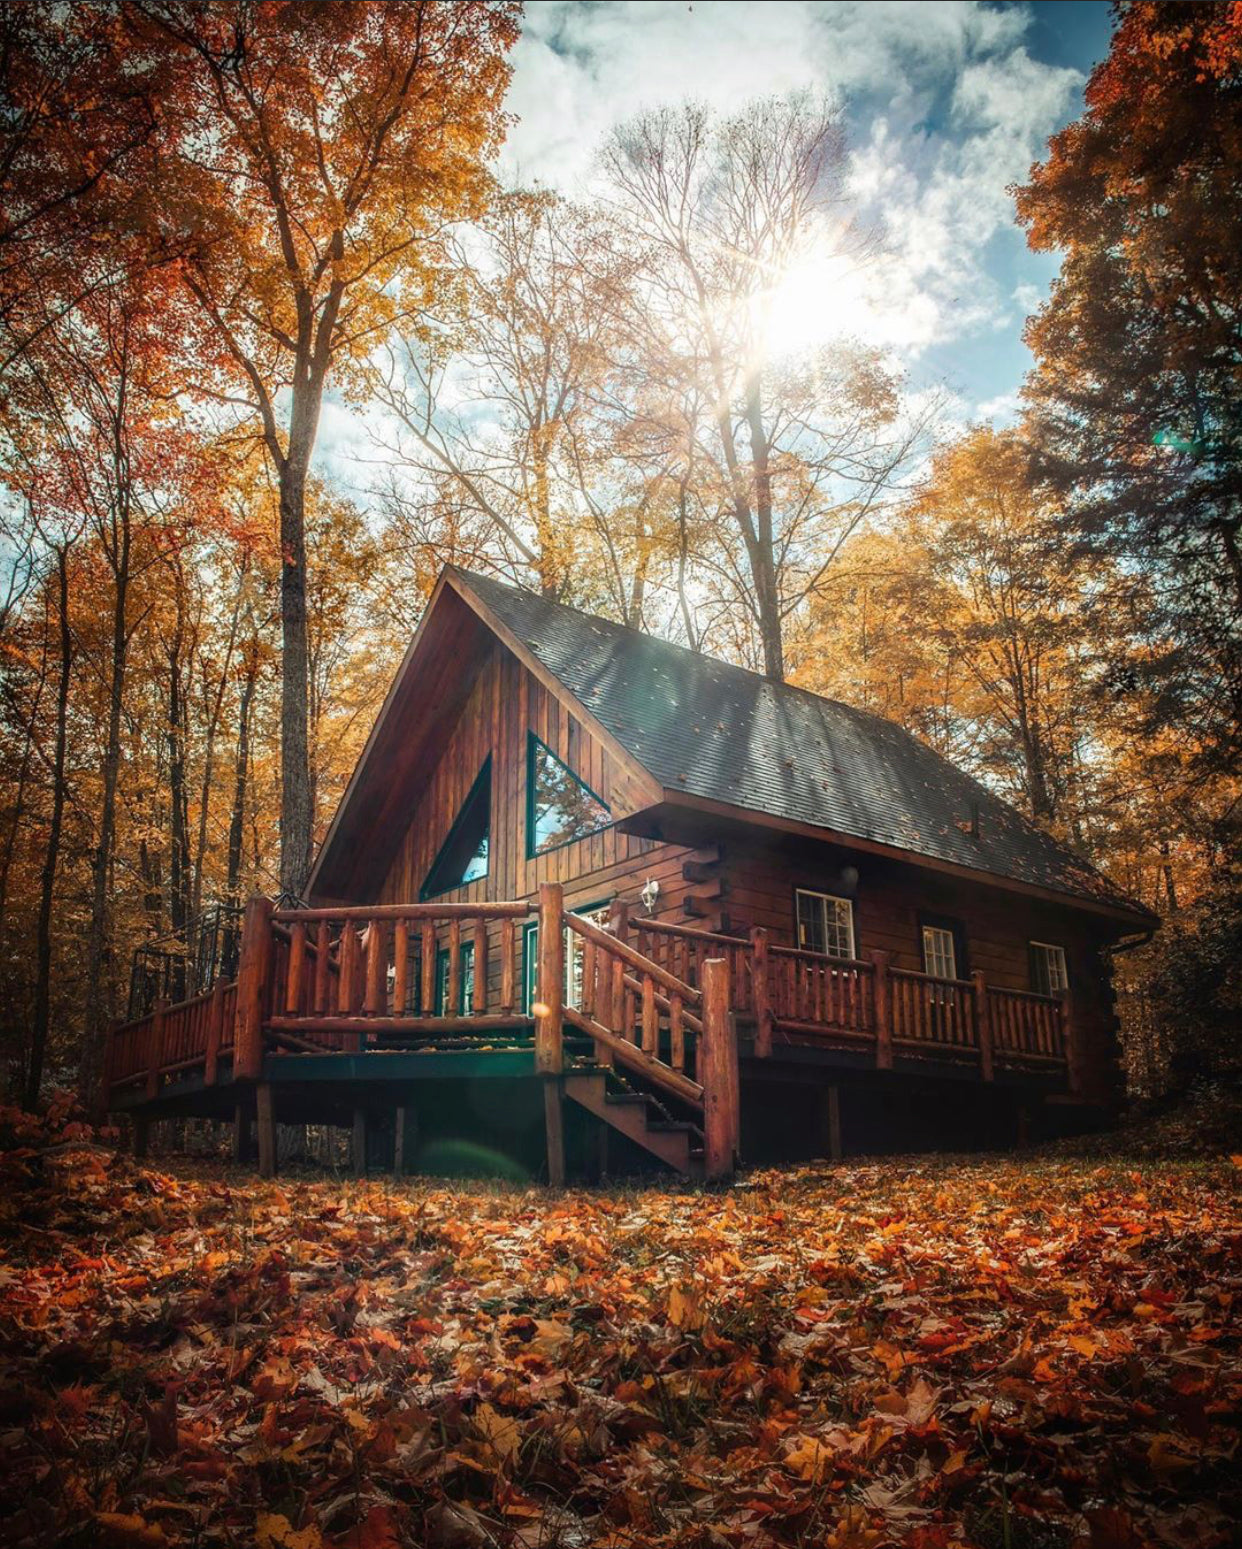 f-stop coffee #coffeeandphoto autumn colors cathedrals of the forrest